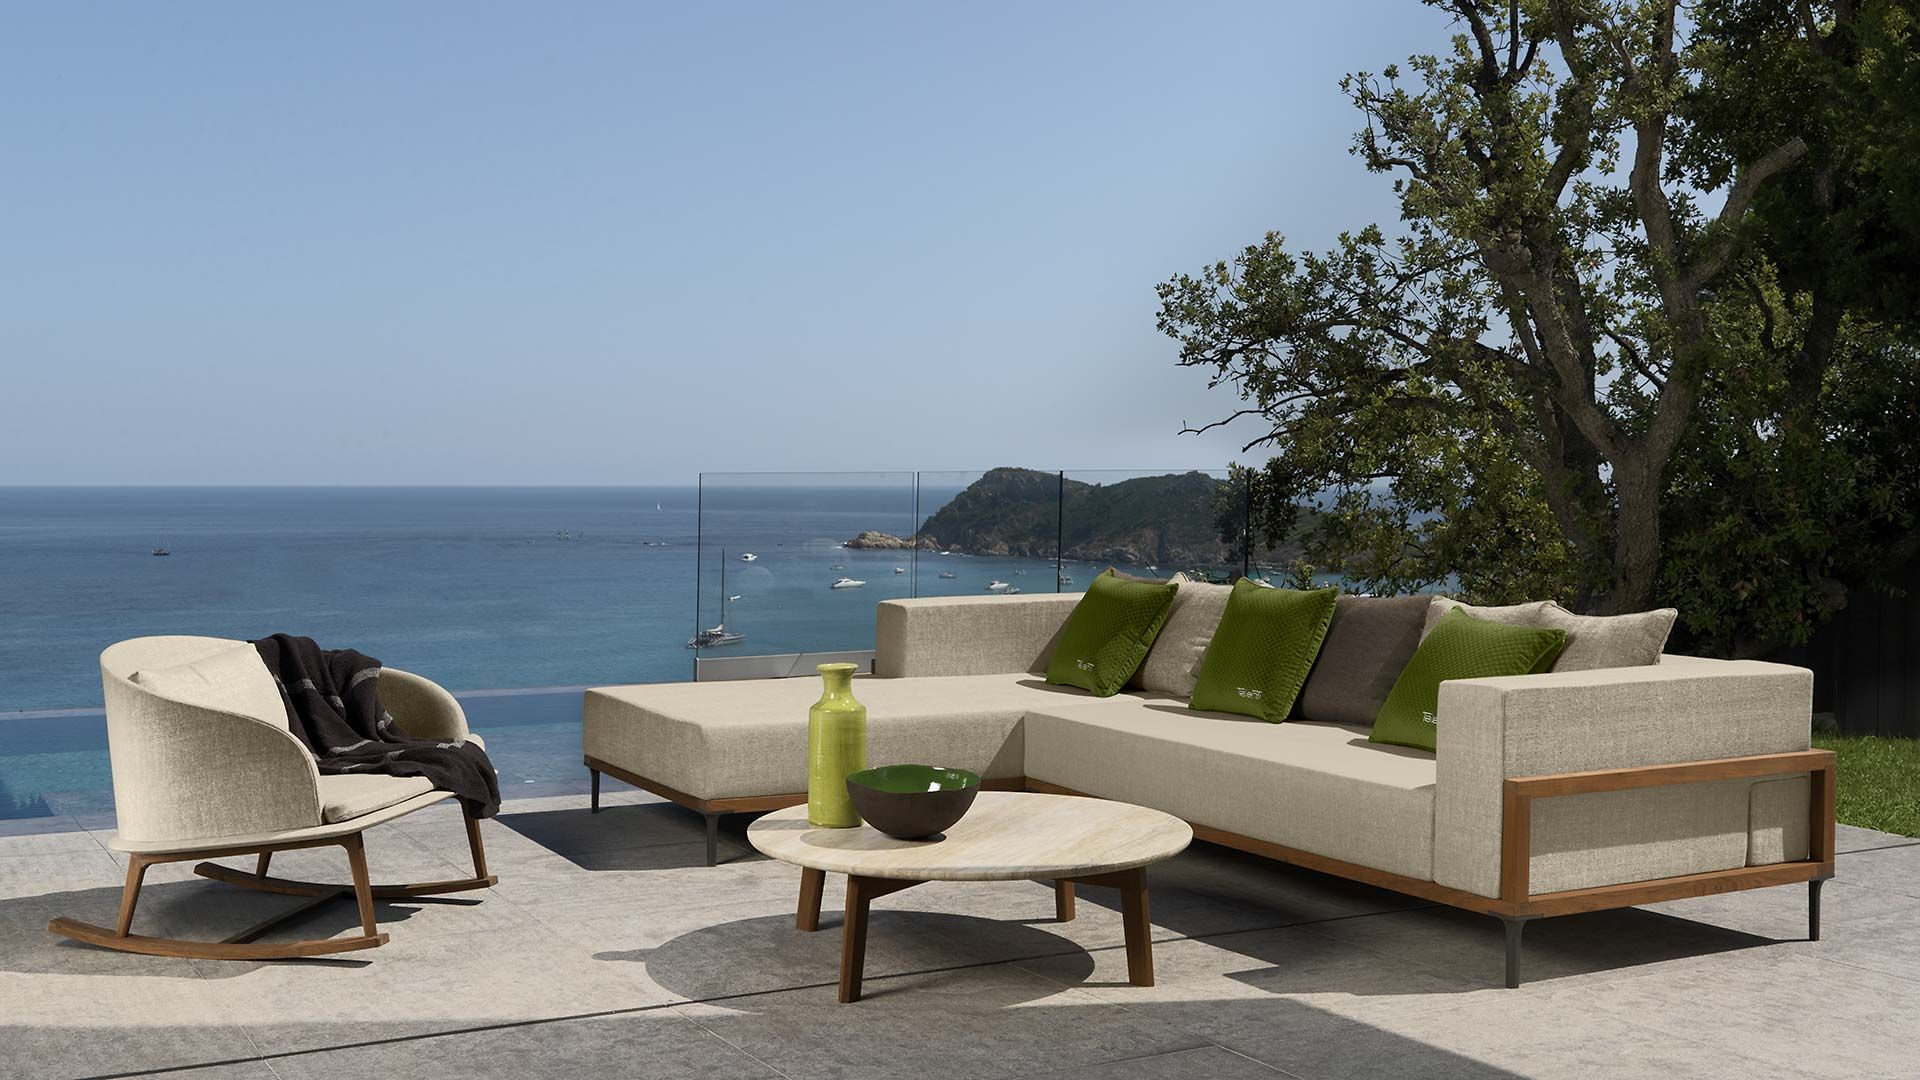 Talenti outdoor furniture from italy sofa armchairs chairs rocher luxury coastal living